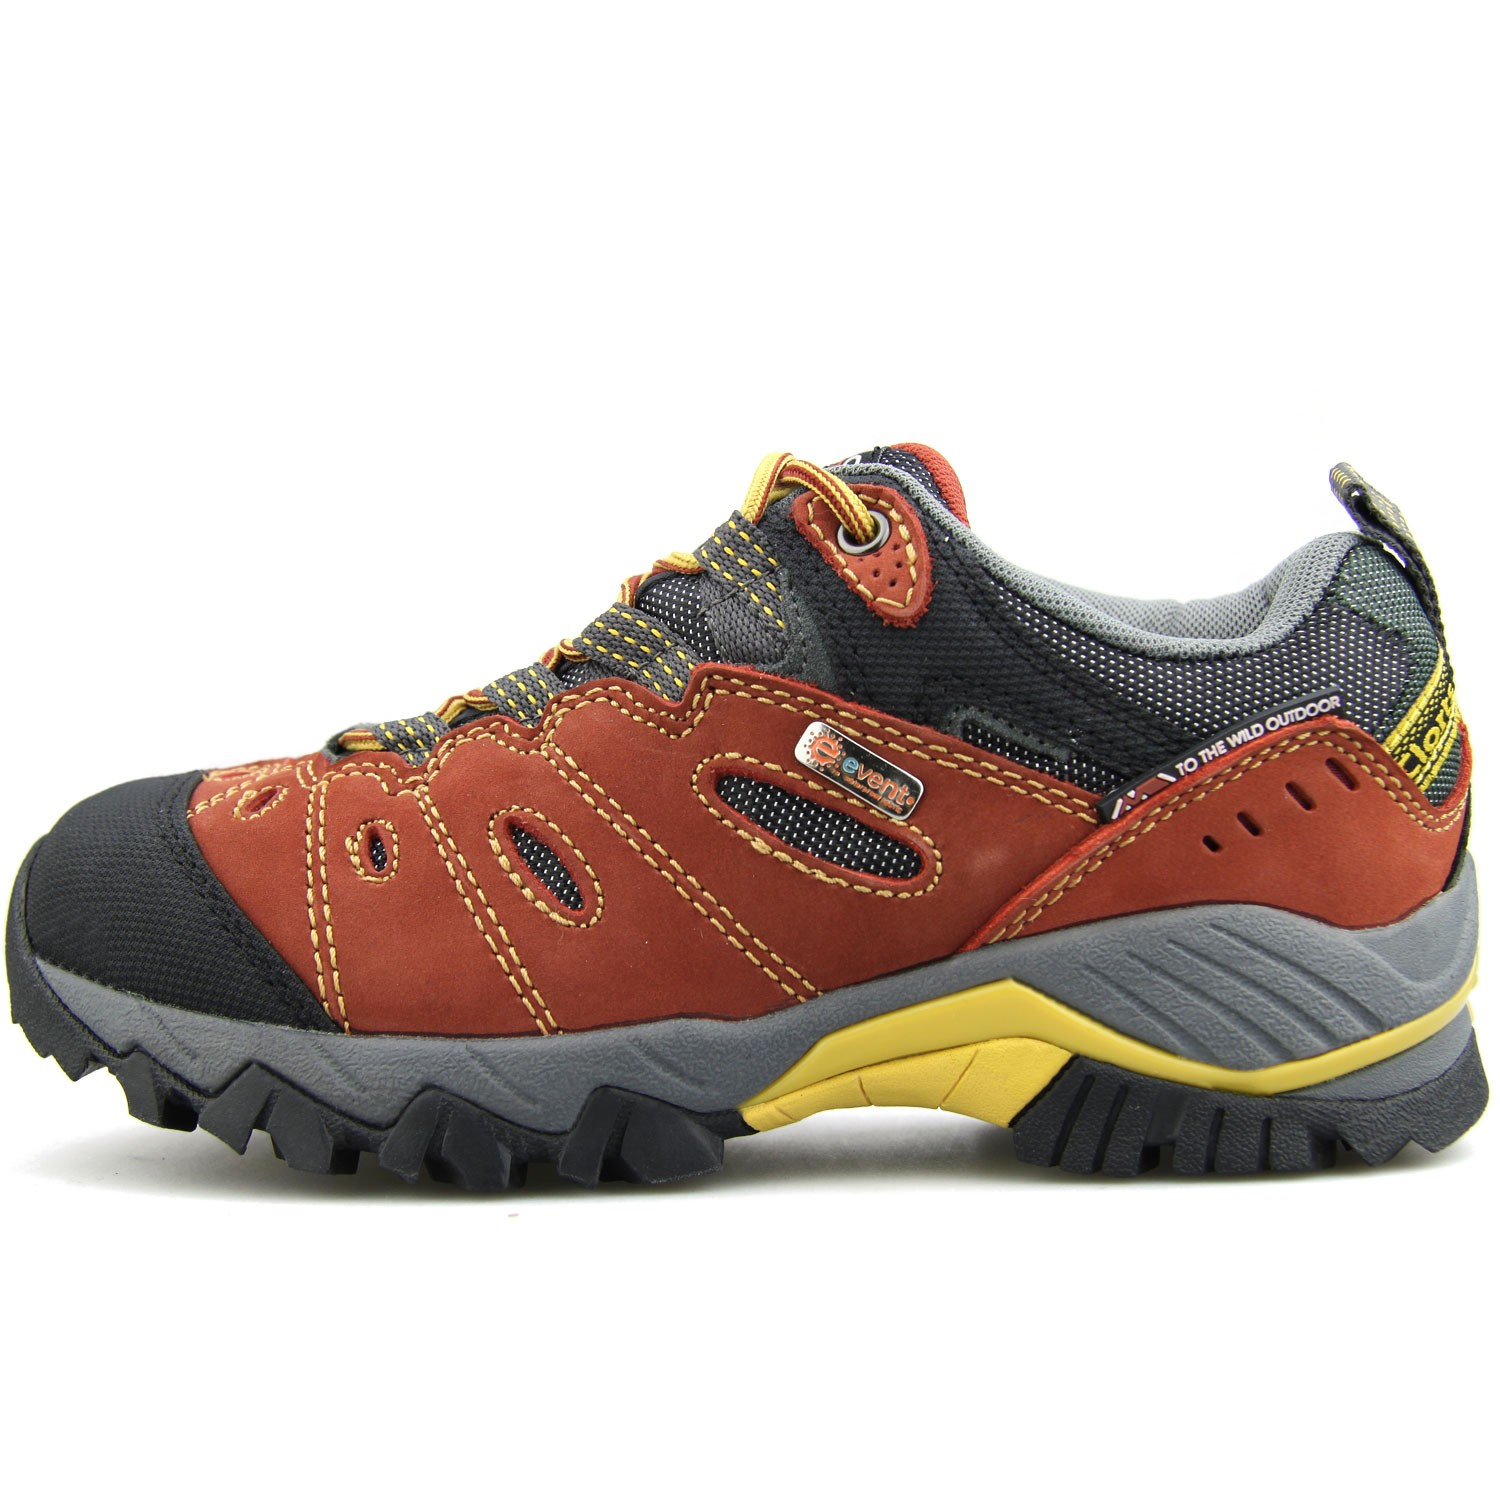 Women's Hiking Shoe Suede Leather Waterproof Trekking Trail Shoe